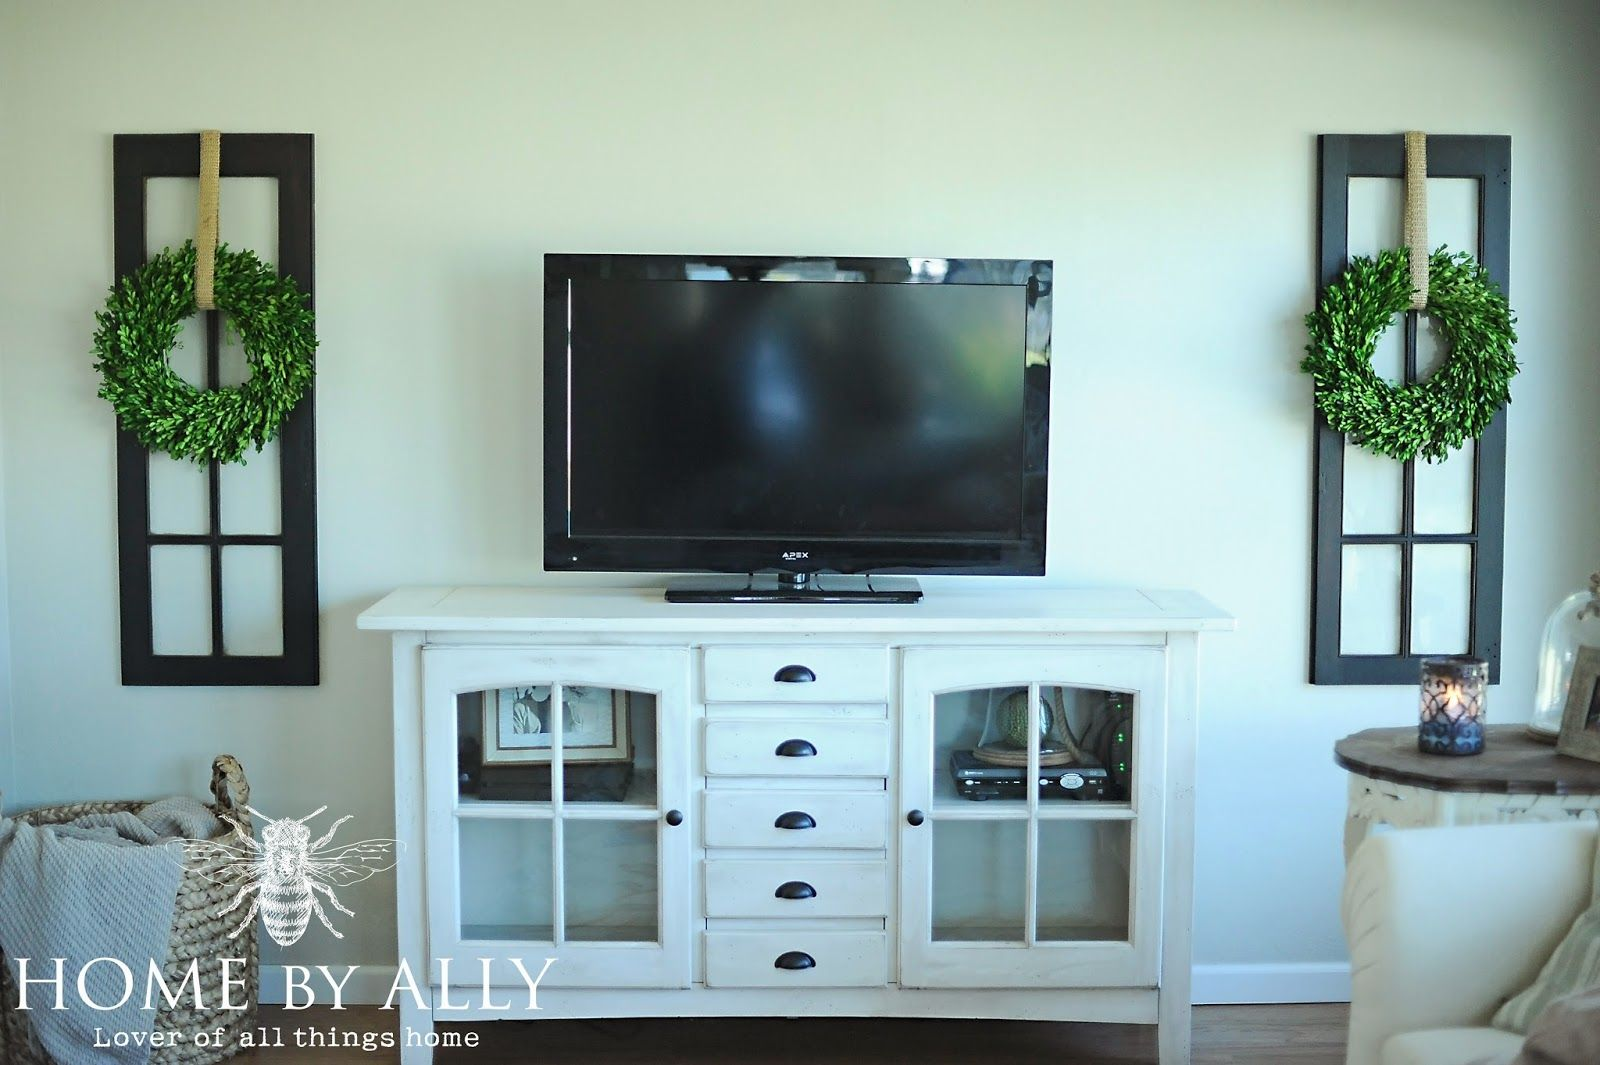 New Windows In The Sunroom And Decorating Around The Tv Decor Around Tv Tv Decor Home